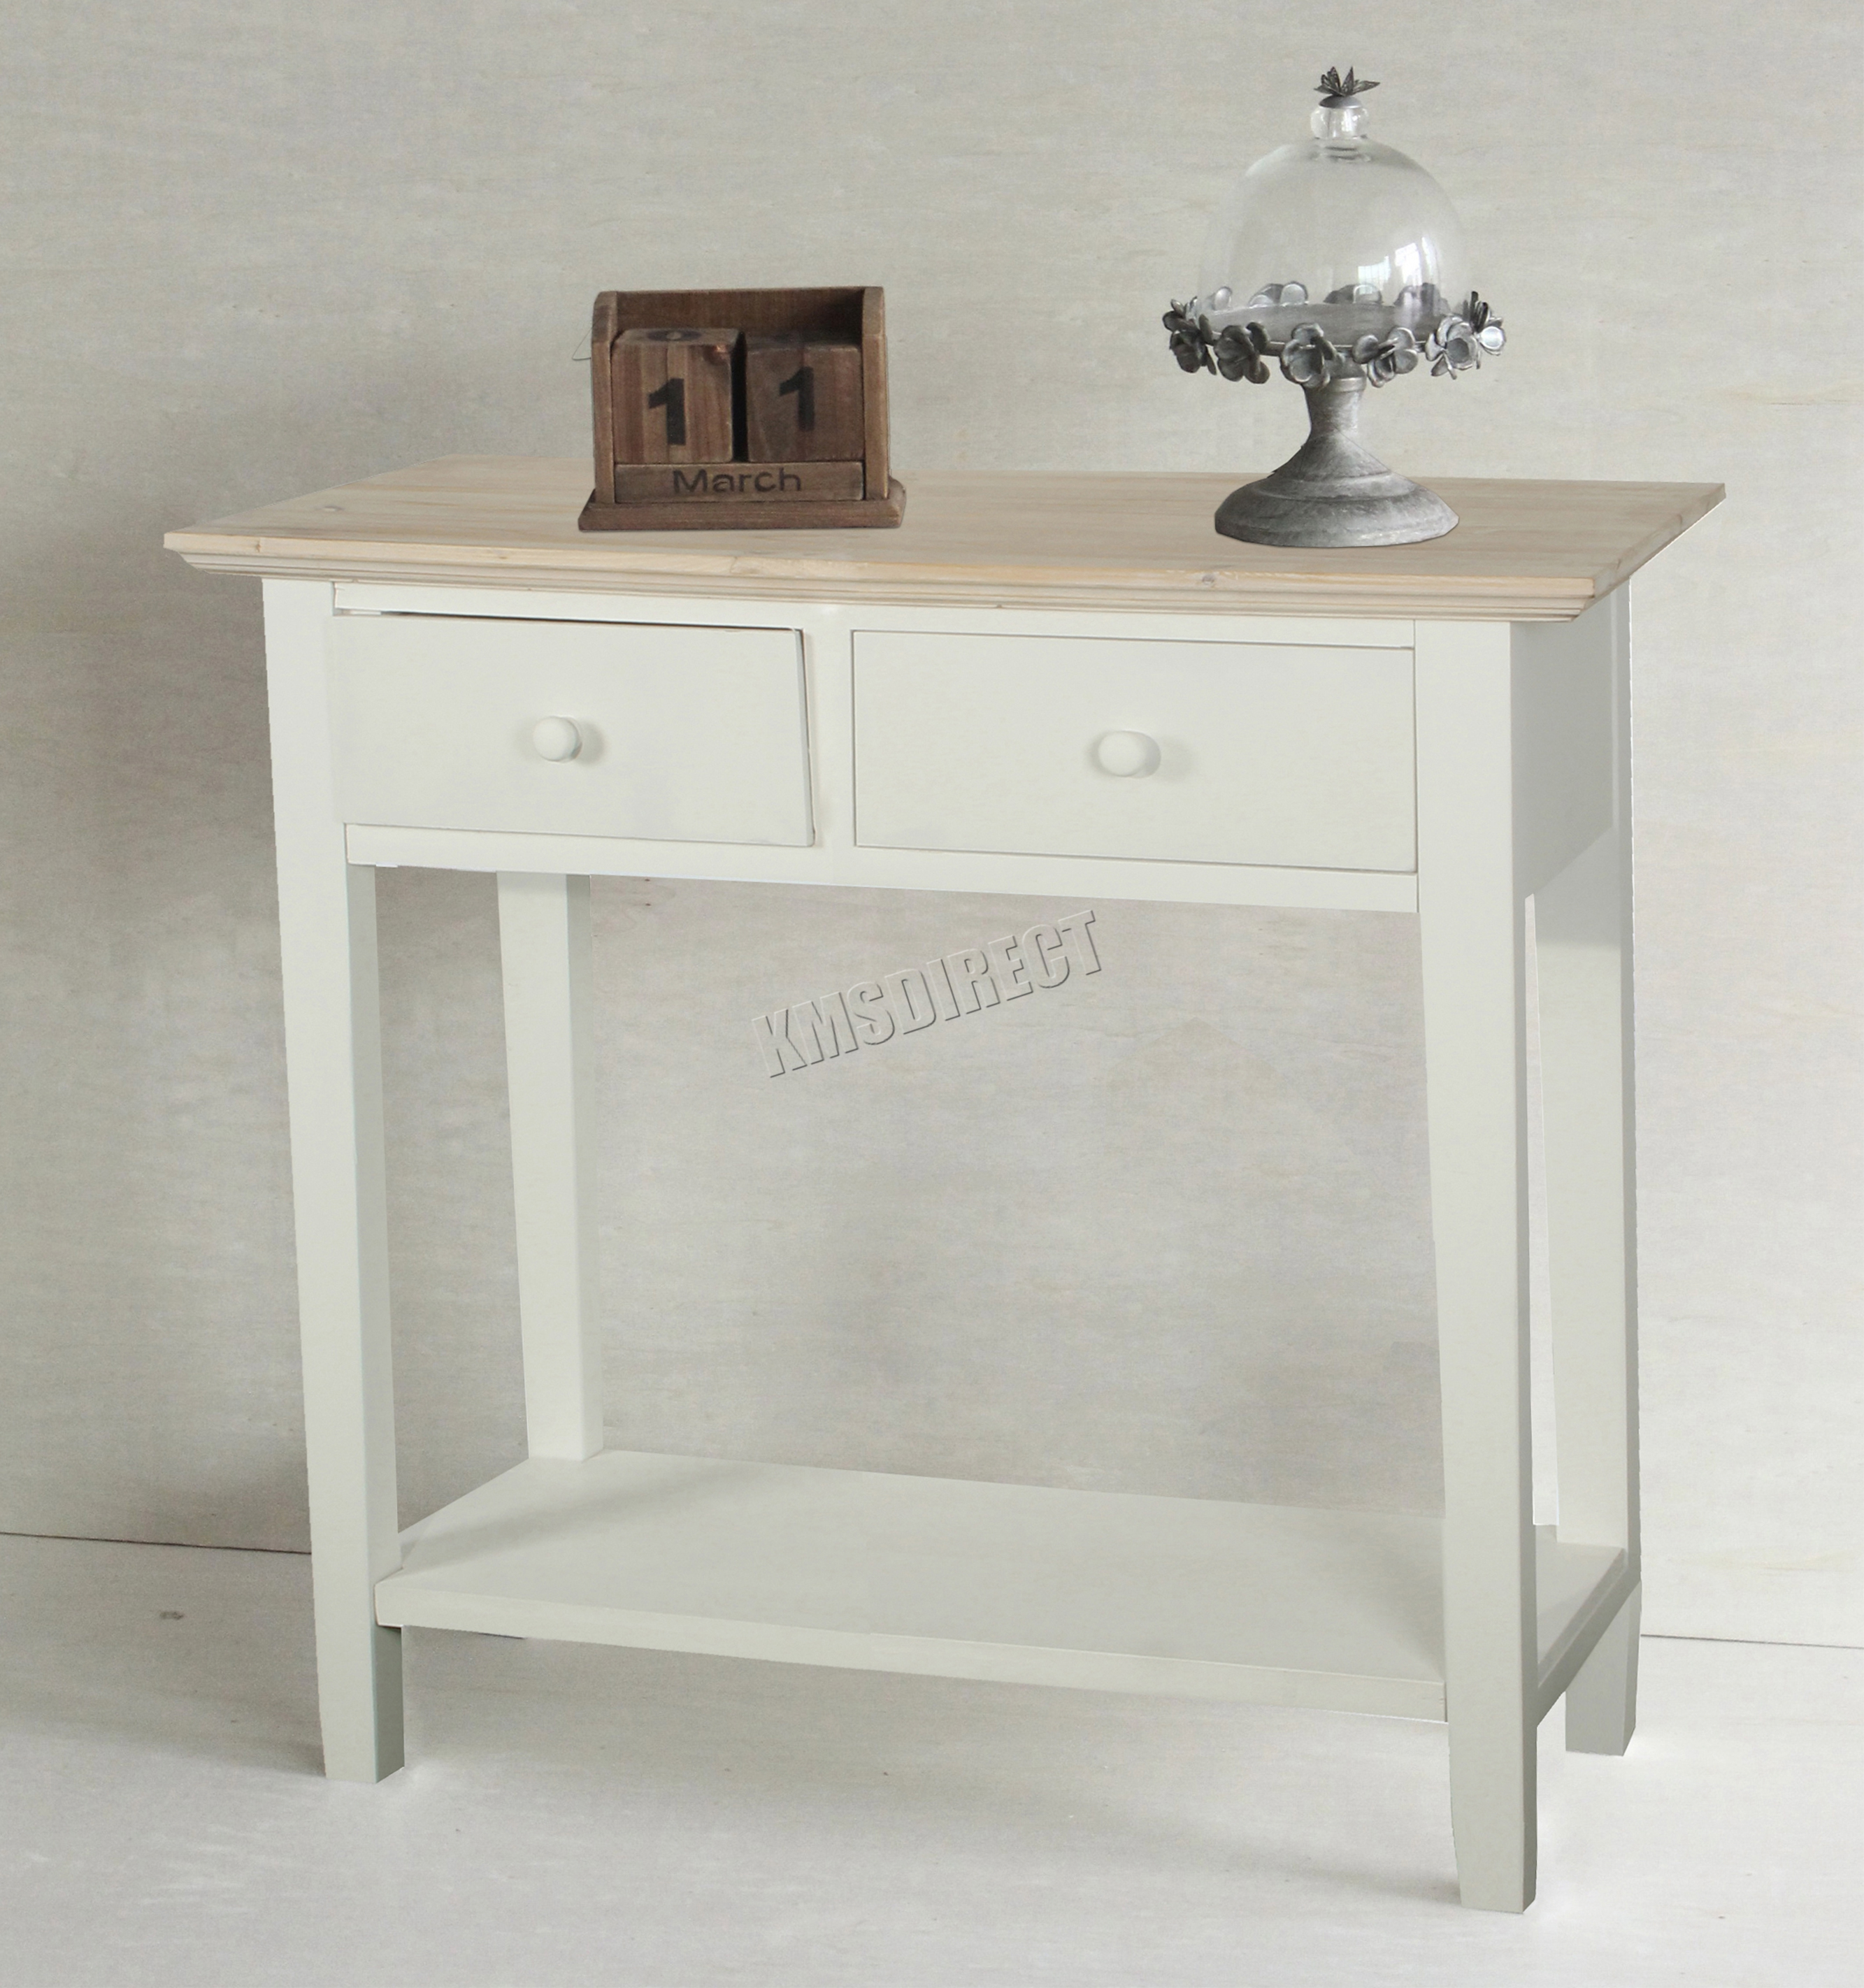 foxhunter console table 2 drawers wood hallway side storage hall kitchen ctw01 ebay. Black Bedroom Furniture Sets. Home Design Ideas